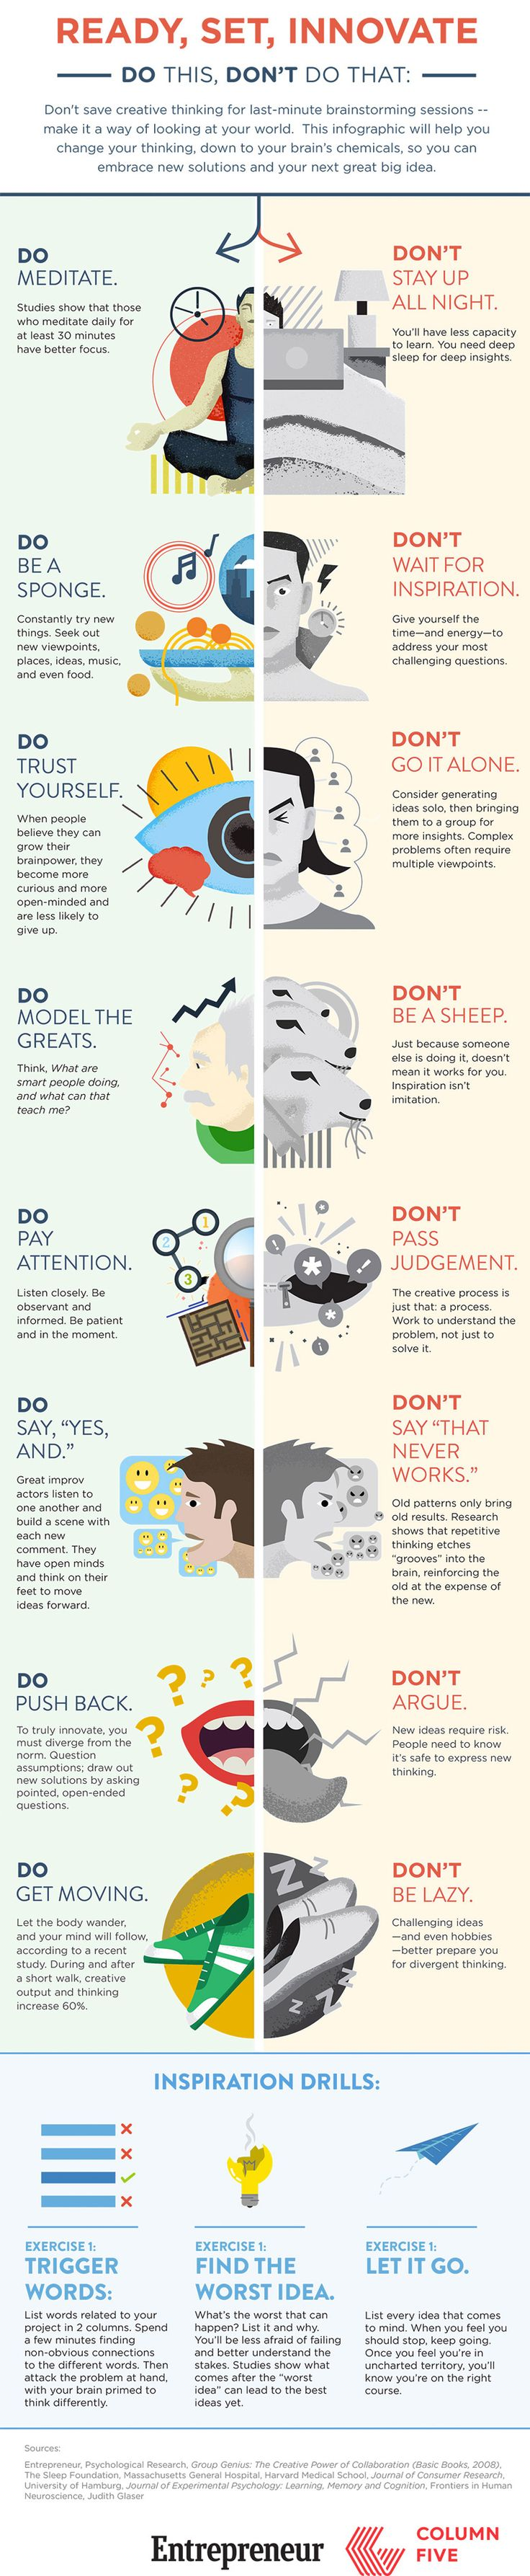 8 Do's And Don'ts To Maintain Your Creativity (Infographic)